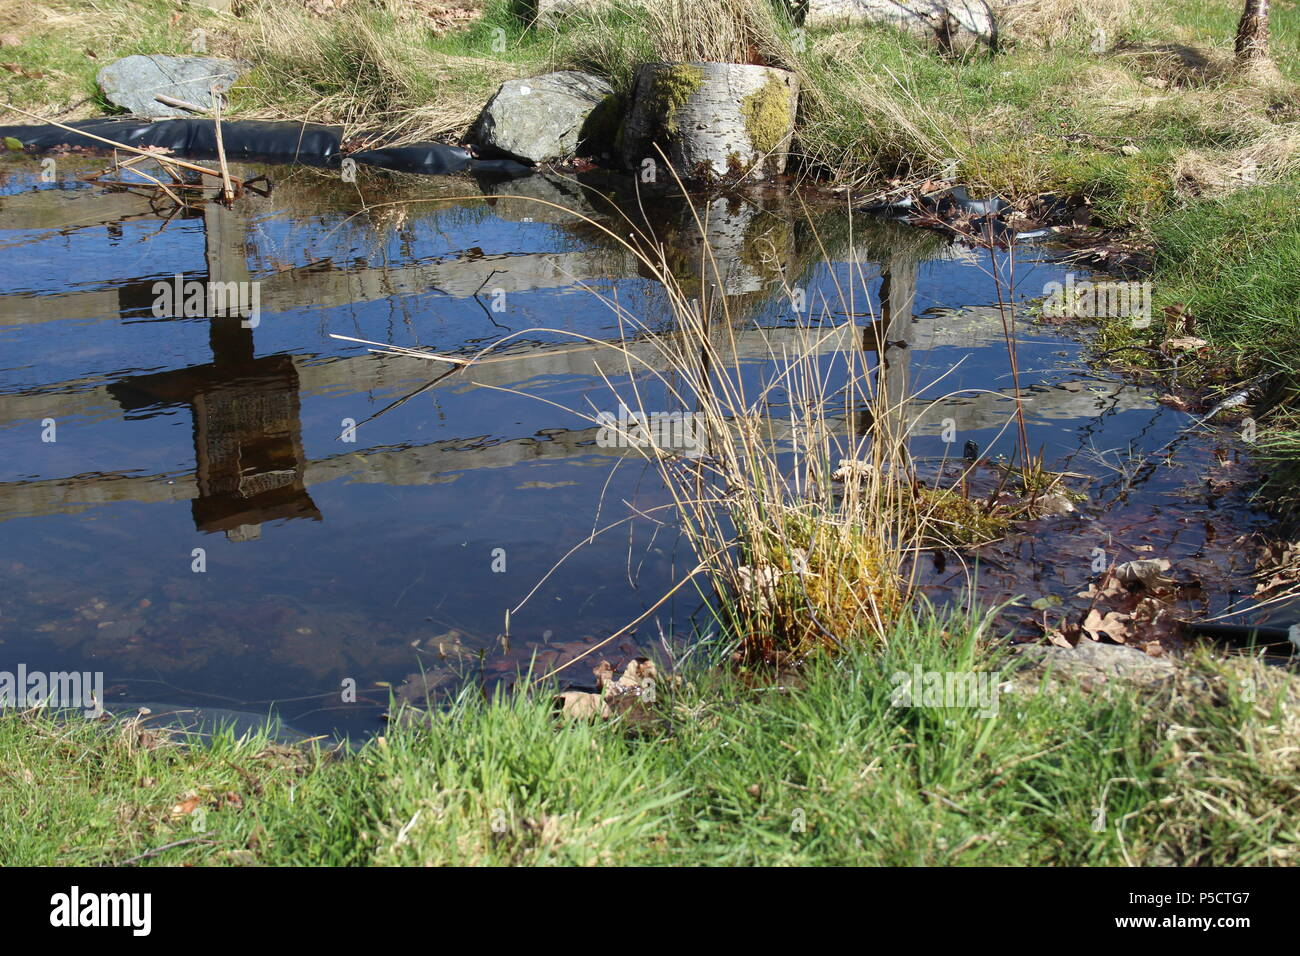 fence reflected in a pond, Elan Valley, Powys, Mid Wales, UK - Stock Image